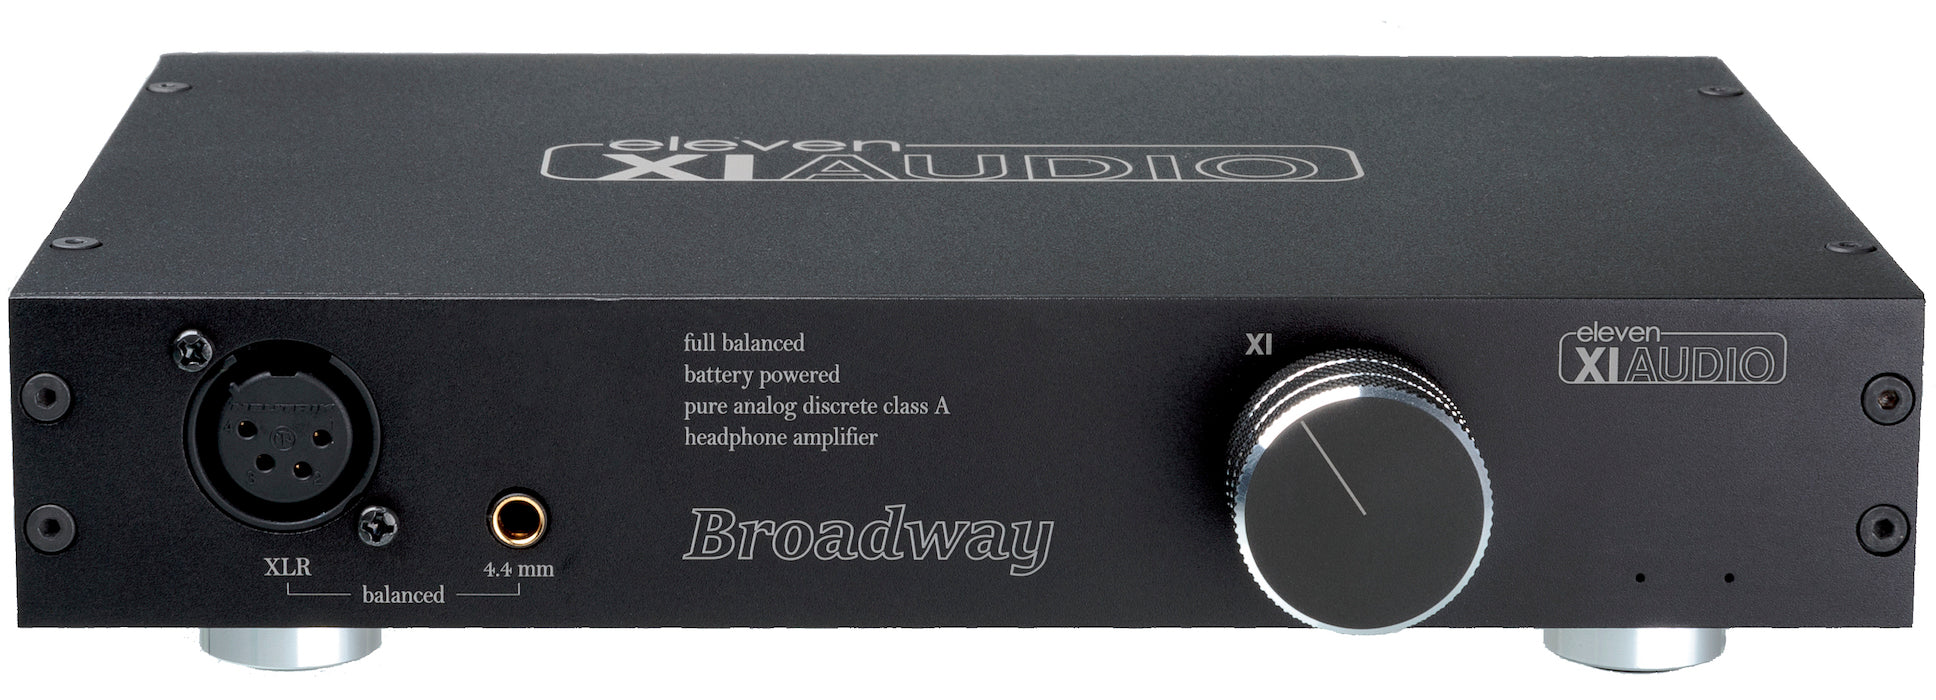 Broadway By Eleven Audio Xiaudio Fully Balanced Battery Headphone Class A Amplifier